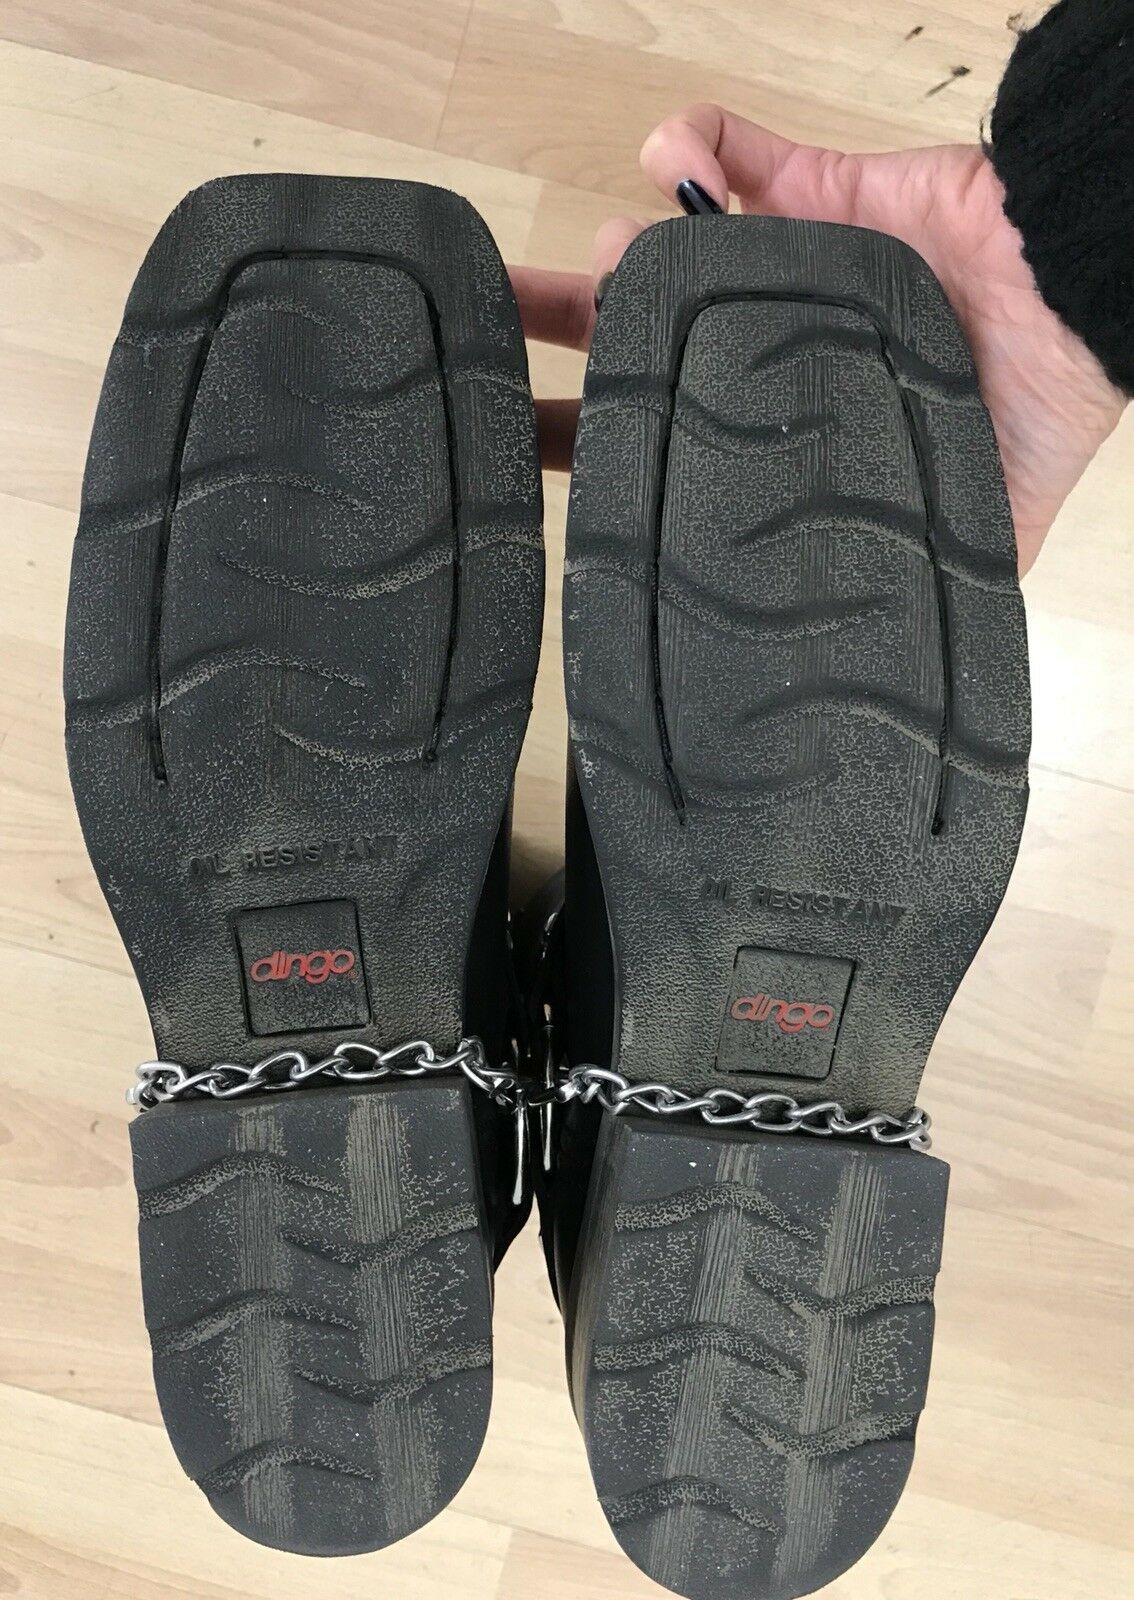 SEXY  BLACK MOTORCYCLE BOOTS w/ chain ornaments (Damens 9.5)